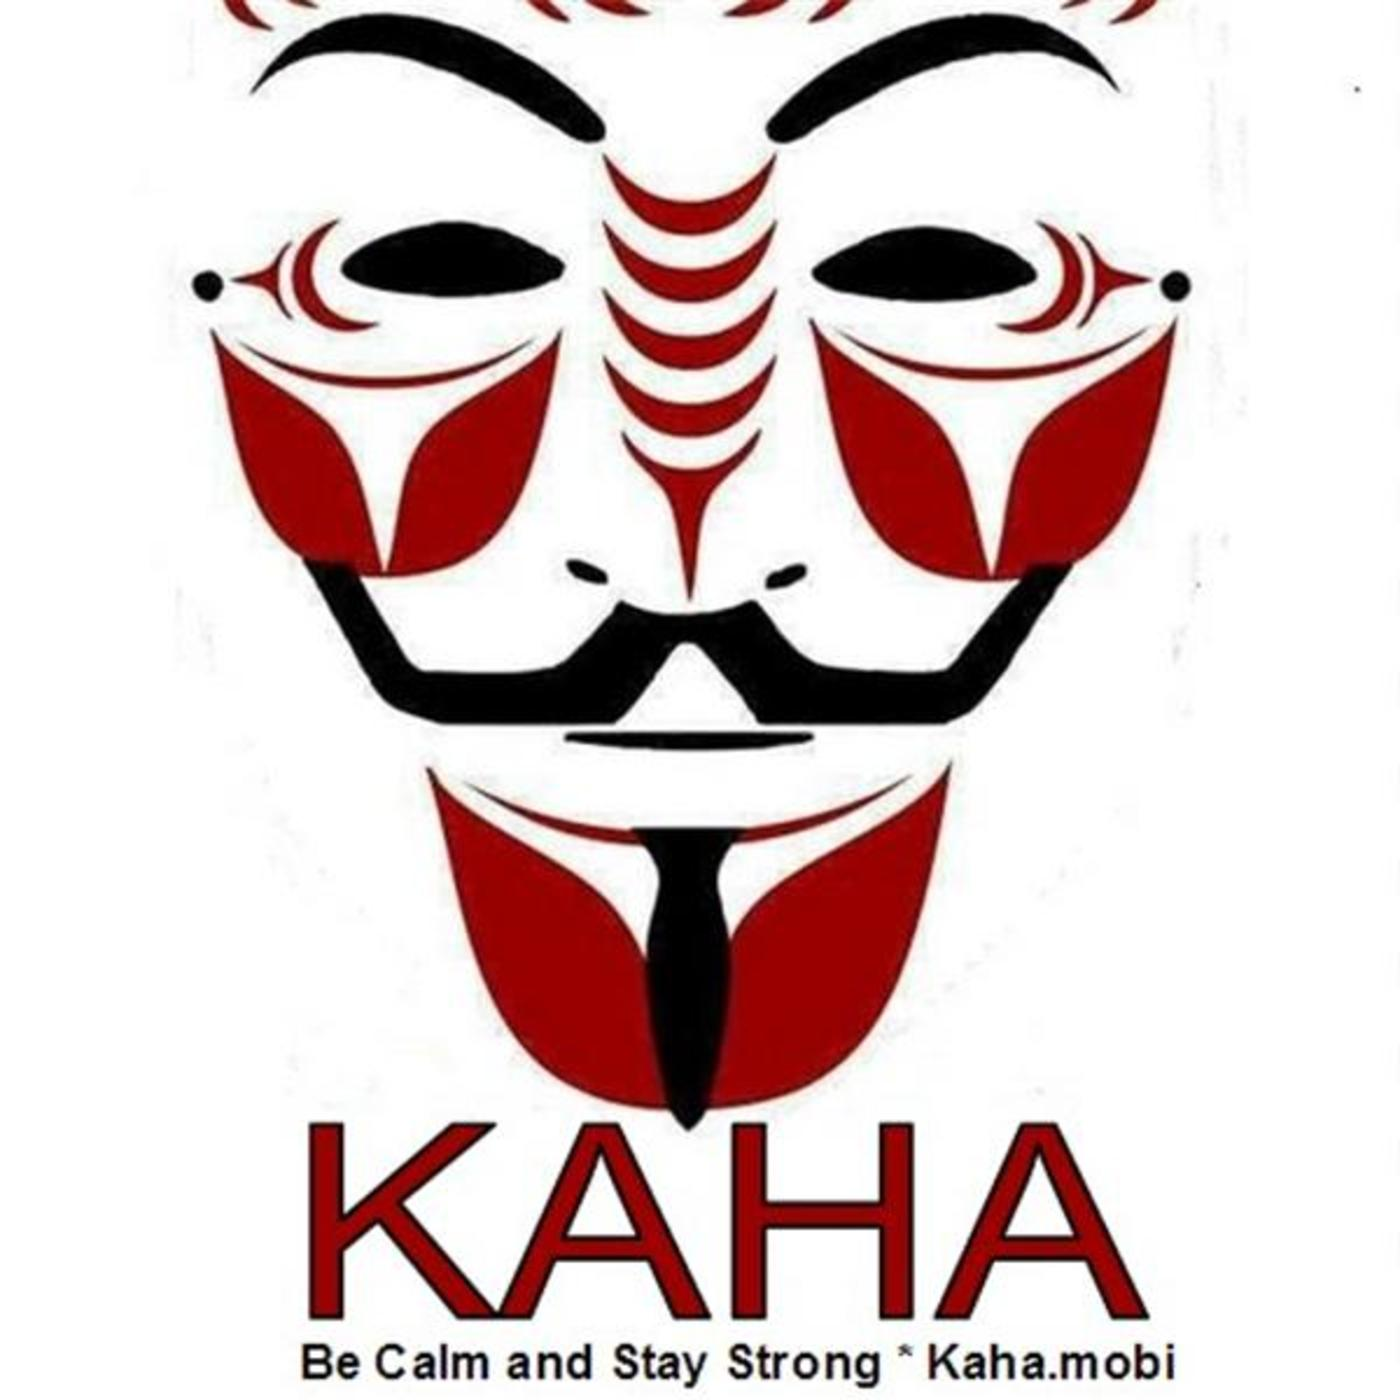 Kaha - Be Calm and Stay Strong!